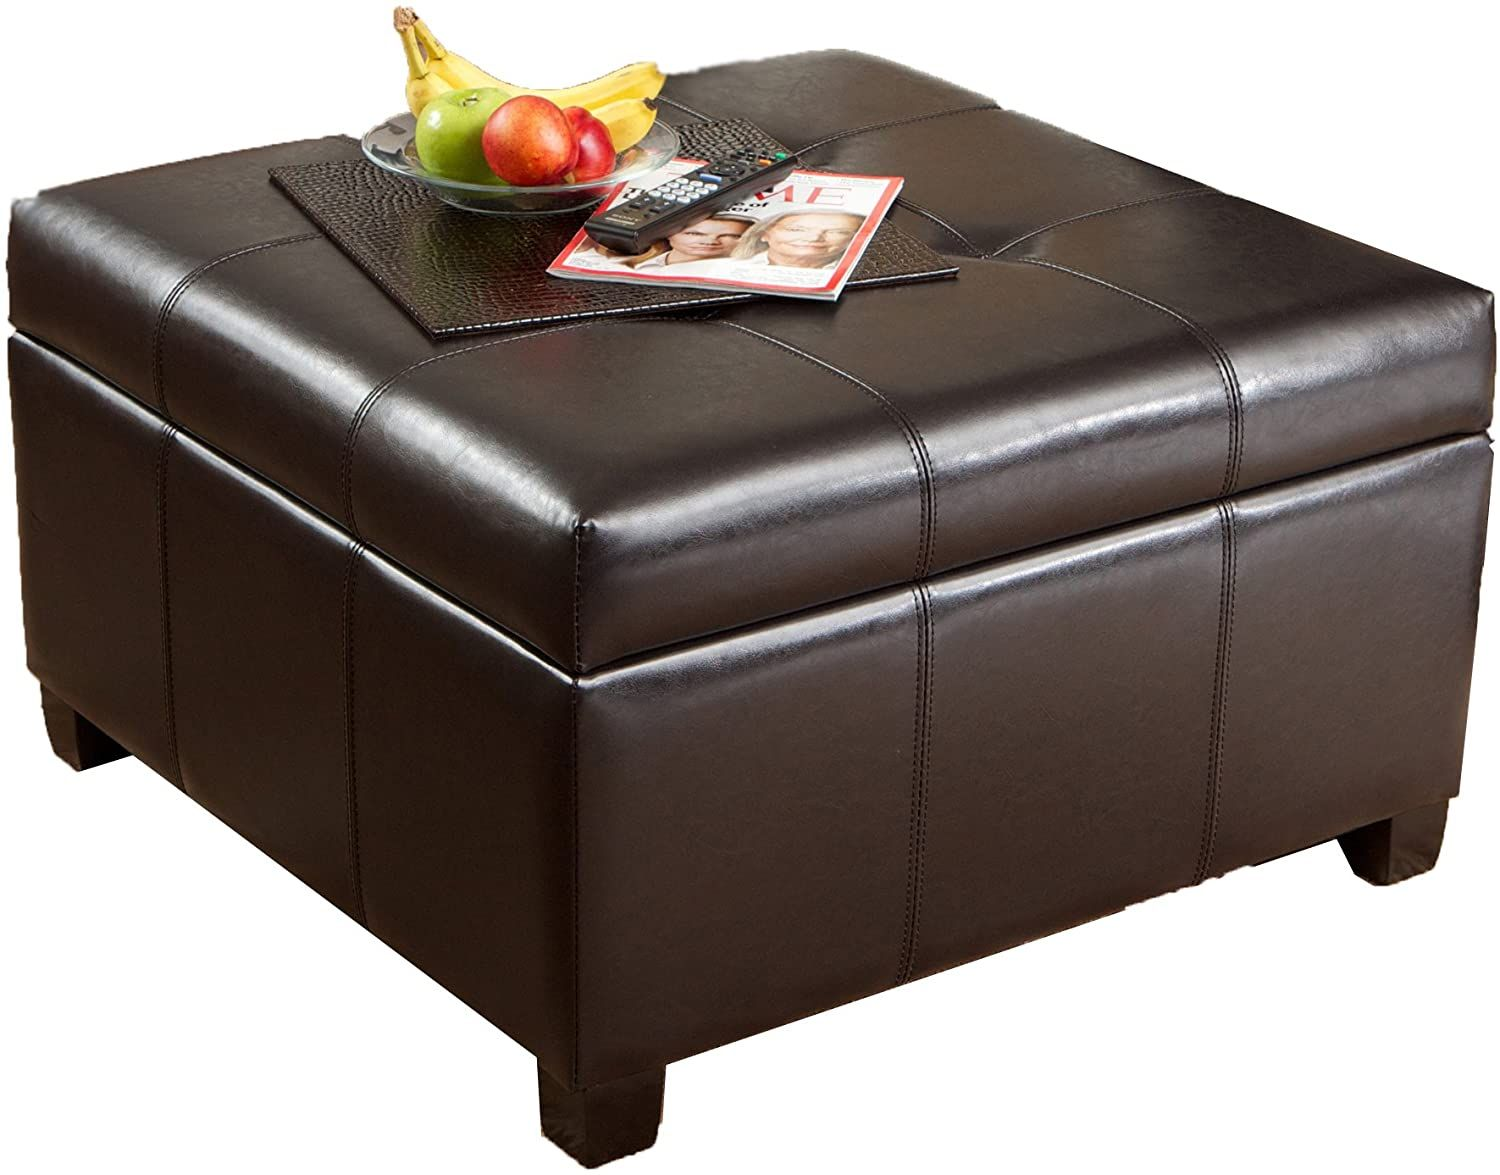 Pin On Coffee Tables Luxury Home Furniture Ideas